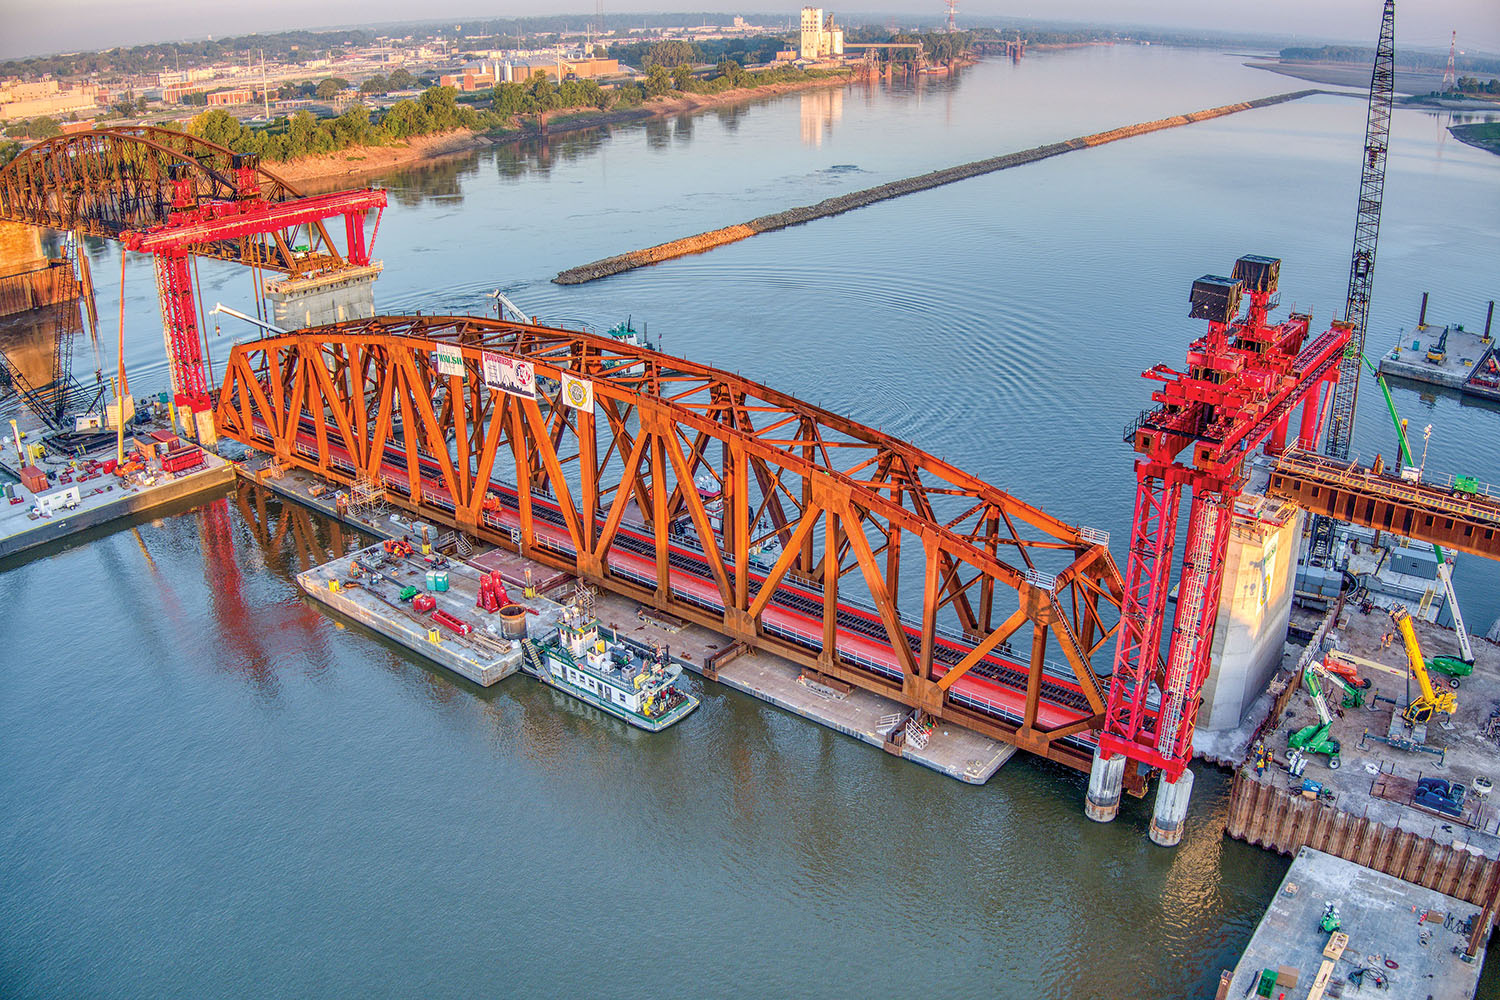 The first of three trusses is slowly raised into position to be placed on the Merchants Bridge on the Mississippi River in downtown St. Louis. (Photo courtesy of Walsh Construction and Trey Cambern Photography)